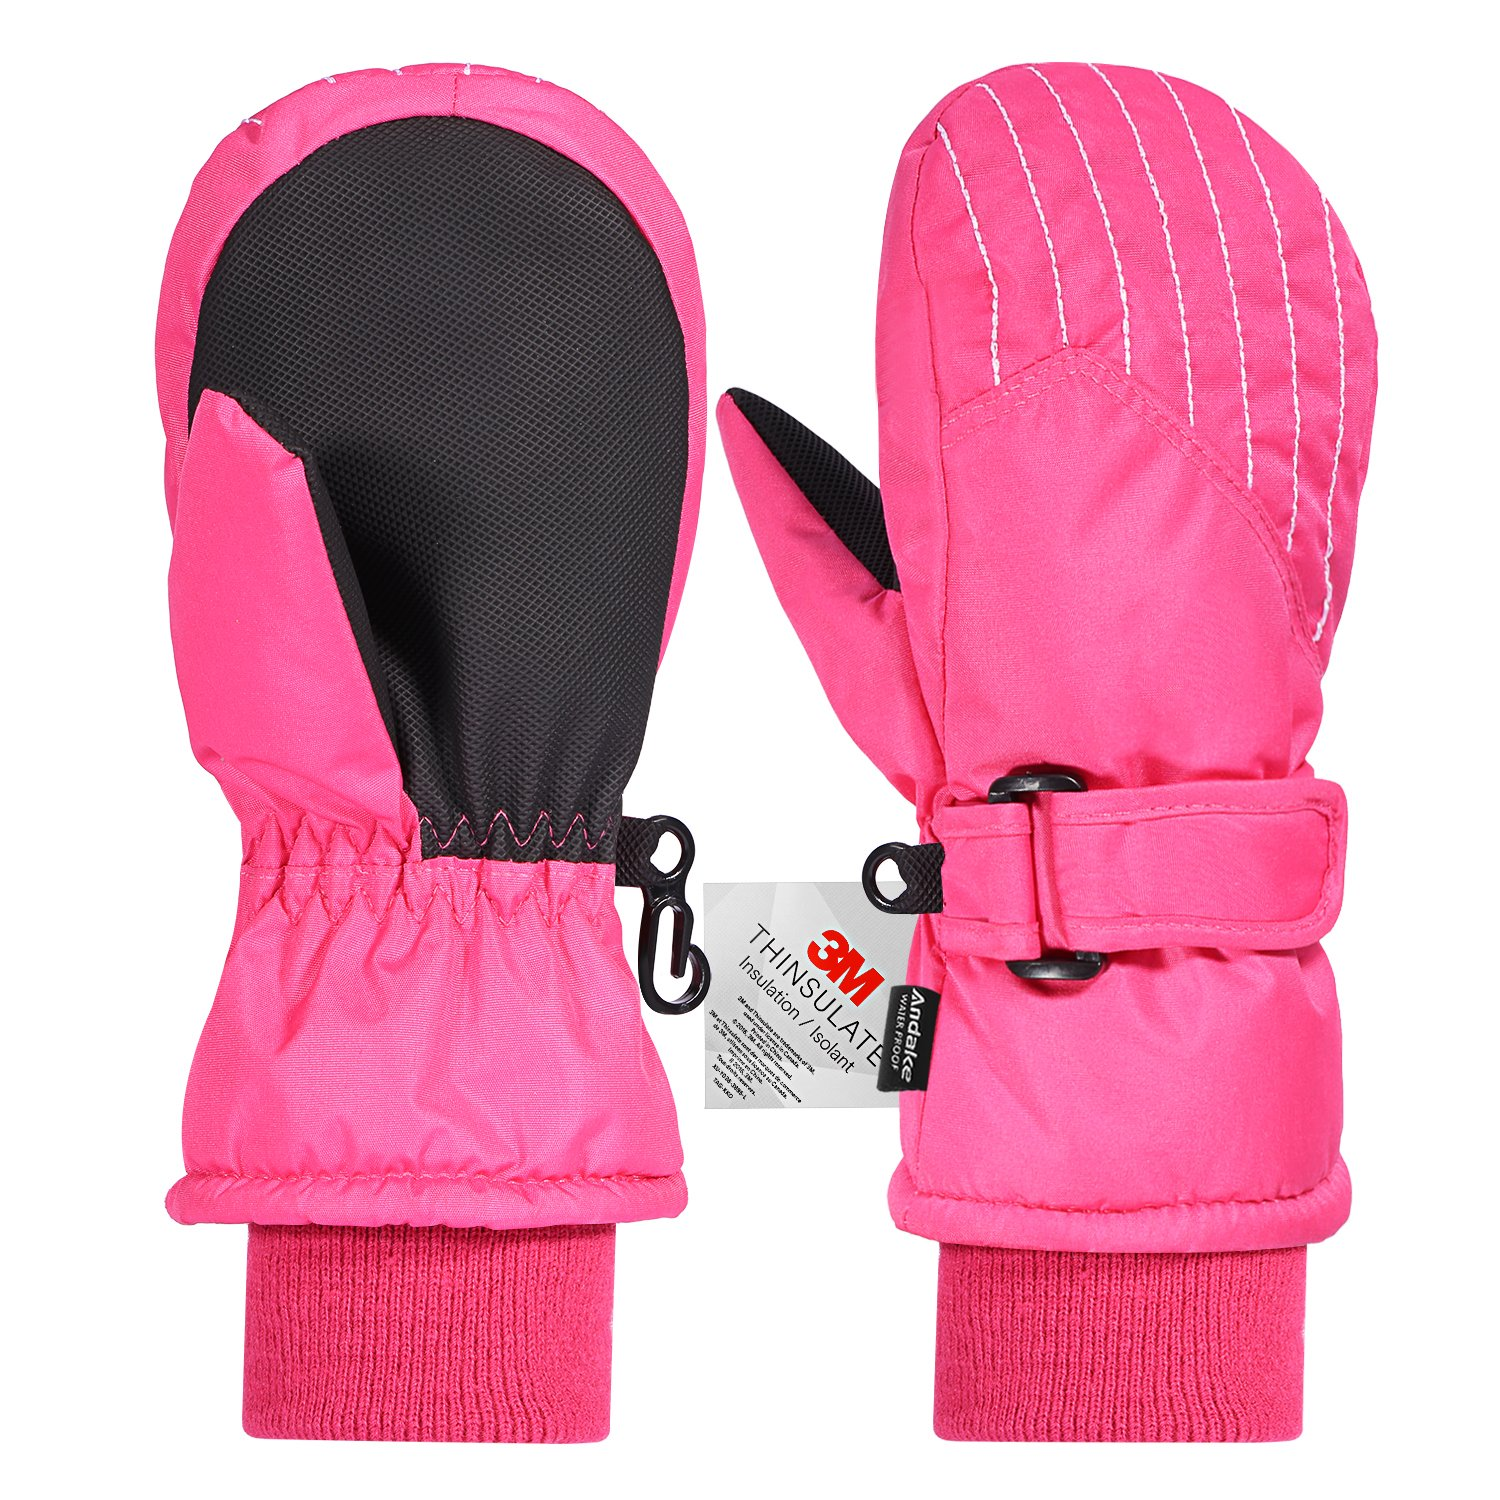 Andake Kids Ski Gloves, Waterproof & Windproof Mittens,Great for 2-7 Years Old Kids kuking